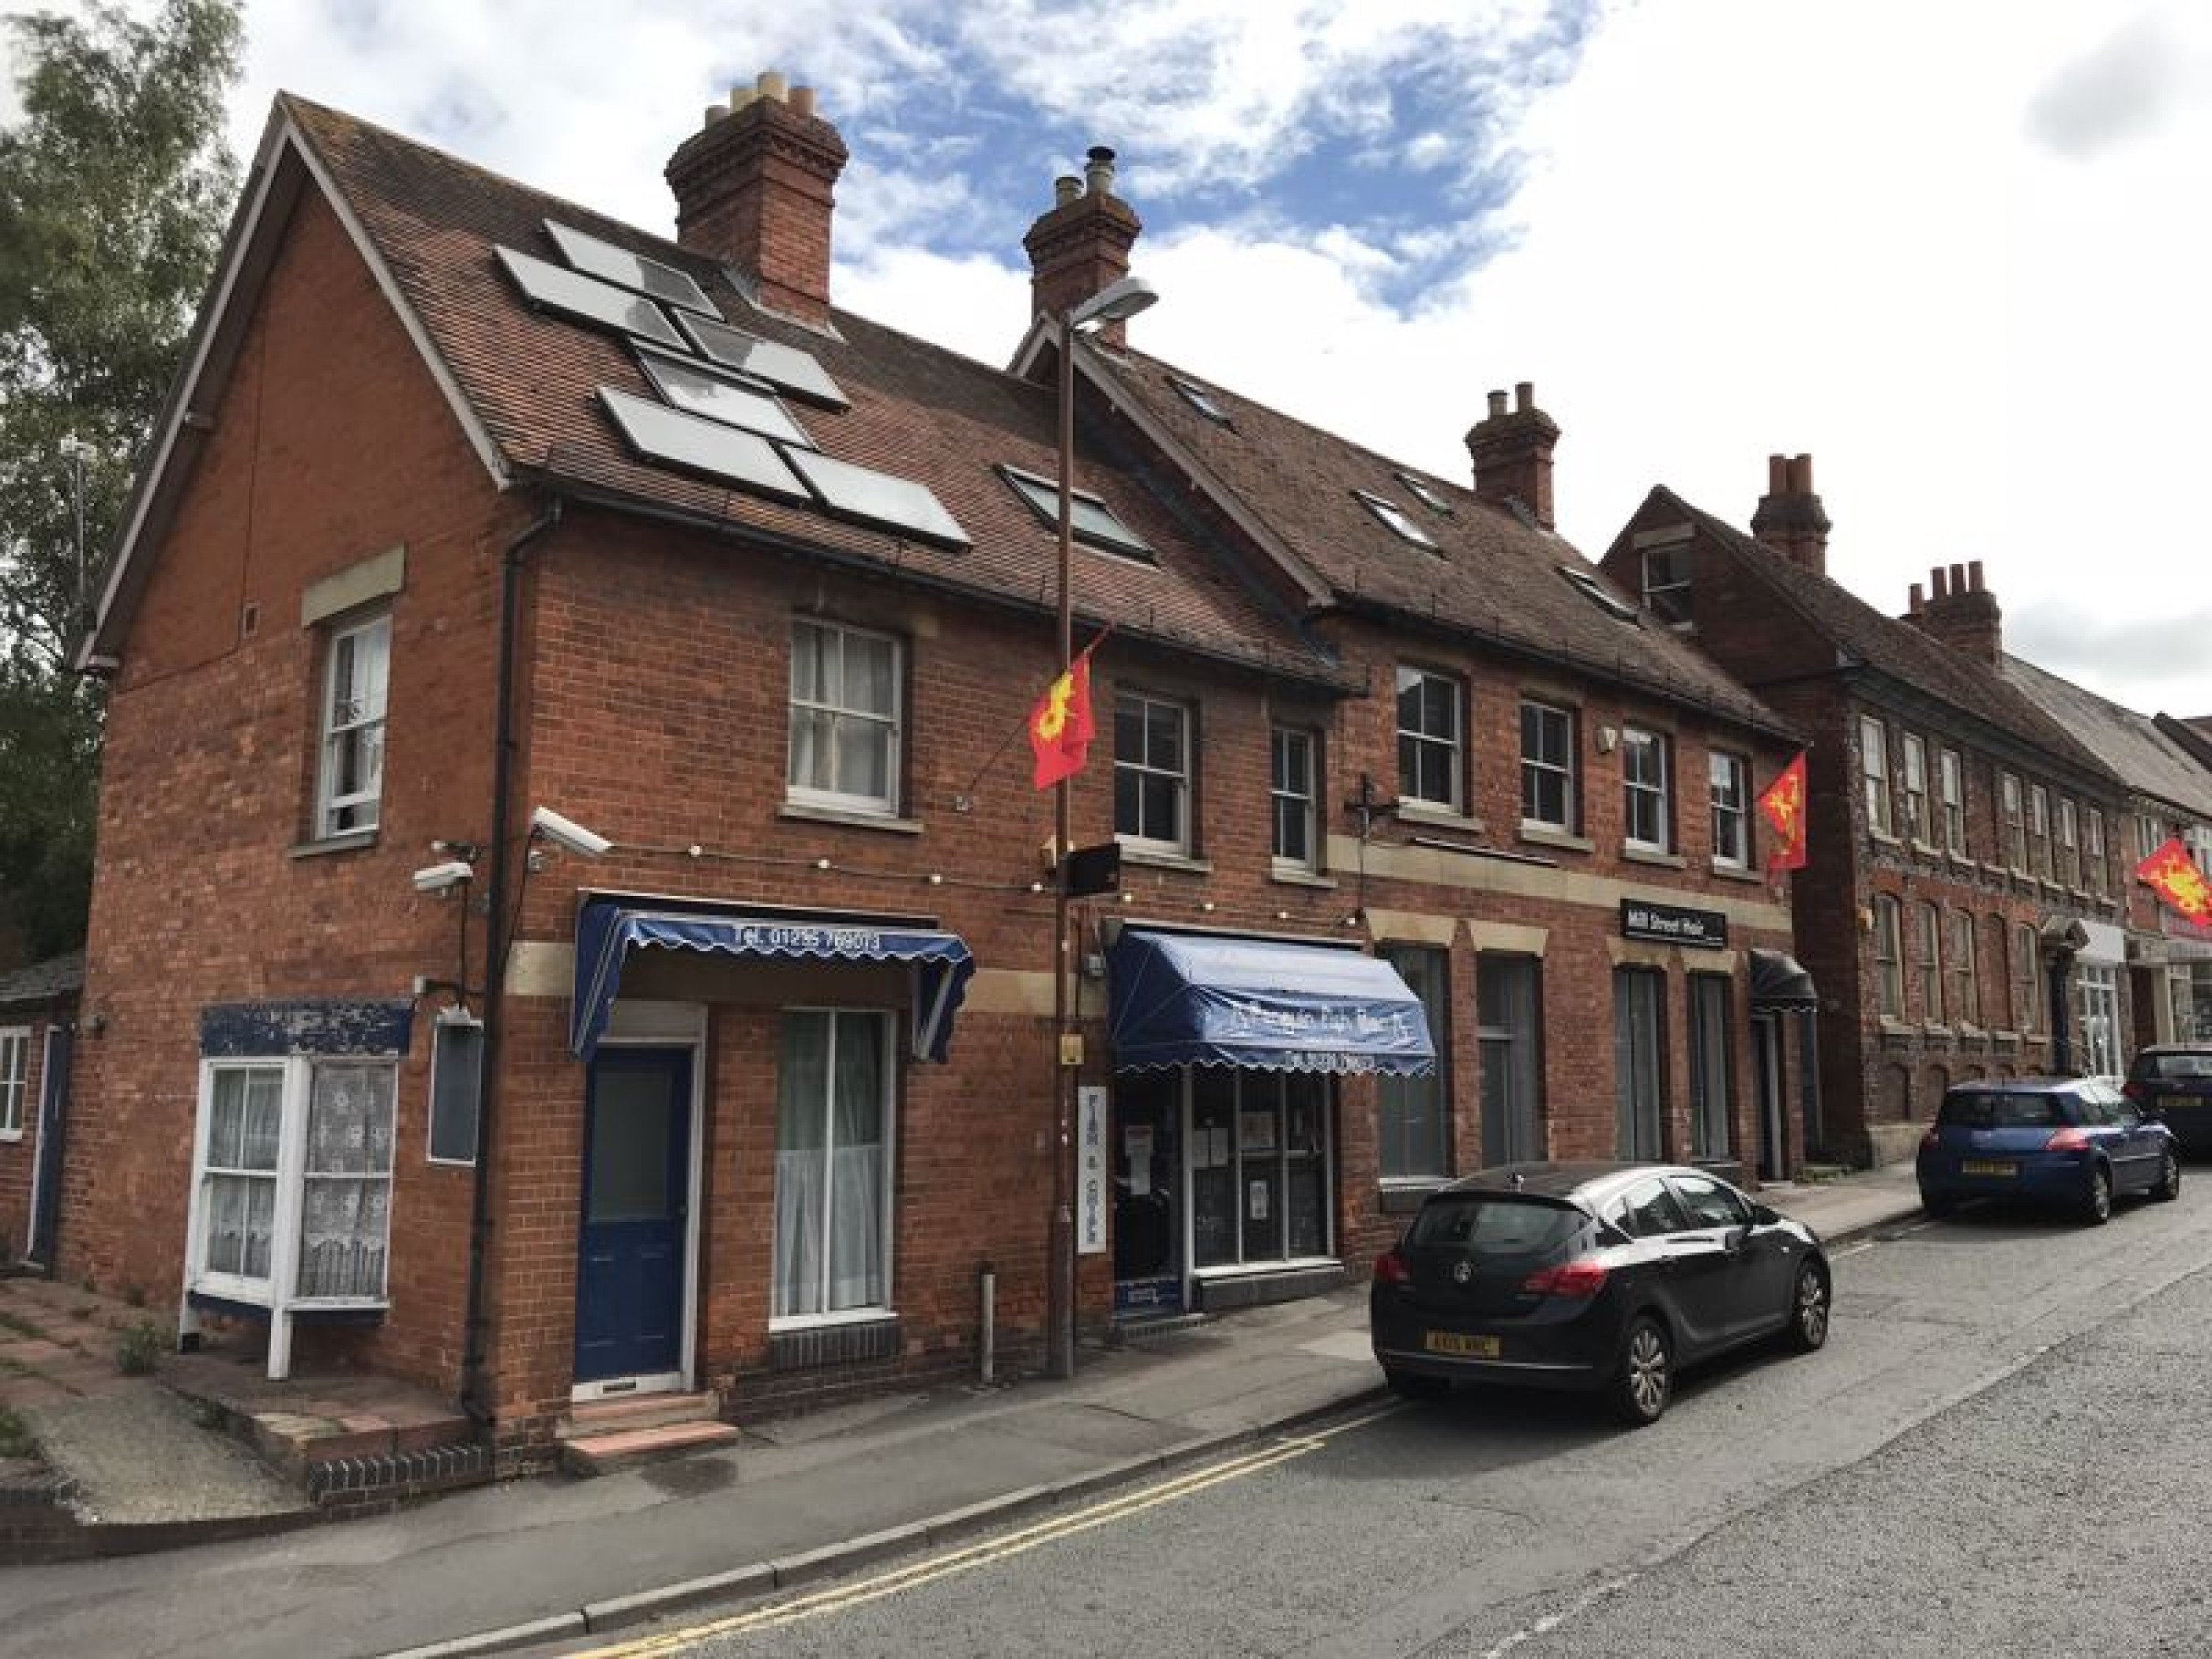 Images for Investment Portfolio for sale Mill Street, Wantage EAID:GreenAndCo2 BID:Green & Co Sales